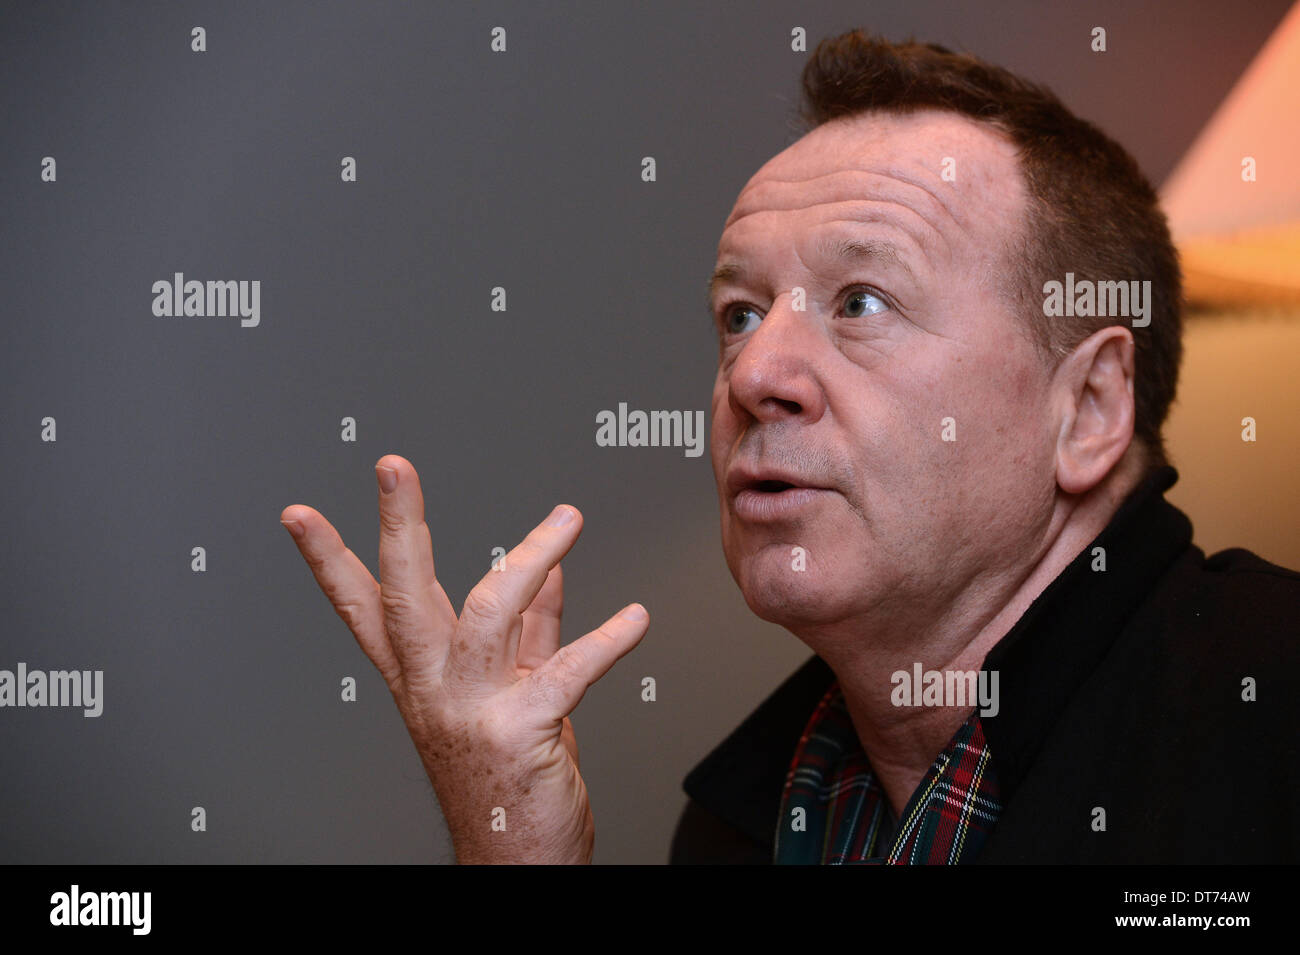 Prague, Czech Republic. 10th February 2014. Simple Minds frontman Jim Kerr is seen during a press conference in Prague, Czech Republic, on February 10, 2014. (CTK Photo/Katerina Sulova/Alamy Live News) - Stock Image